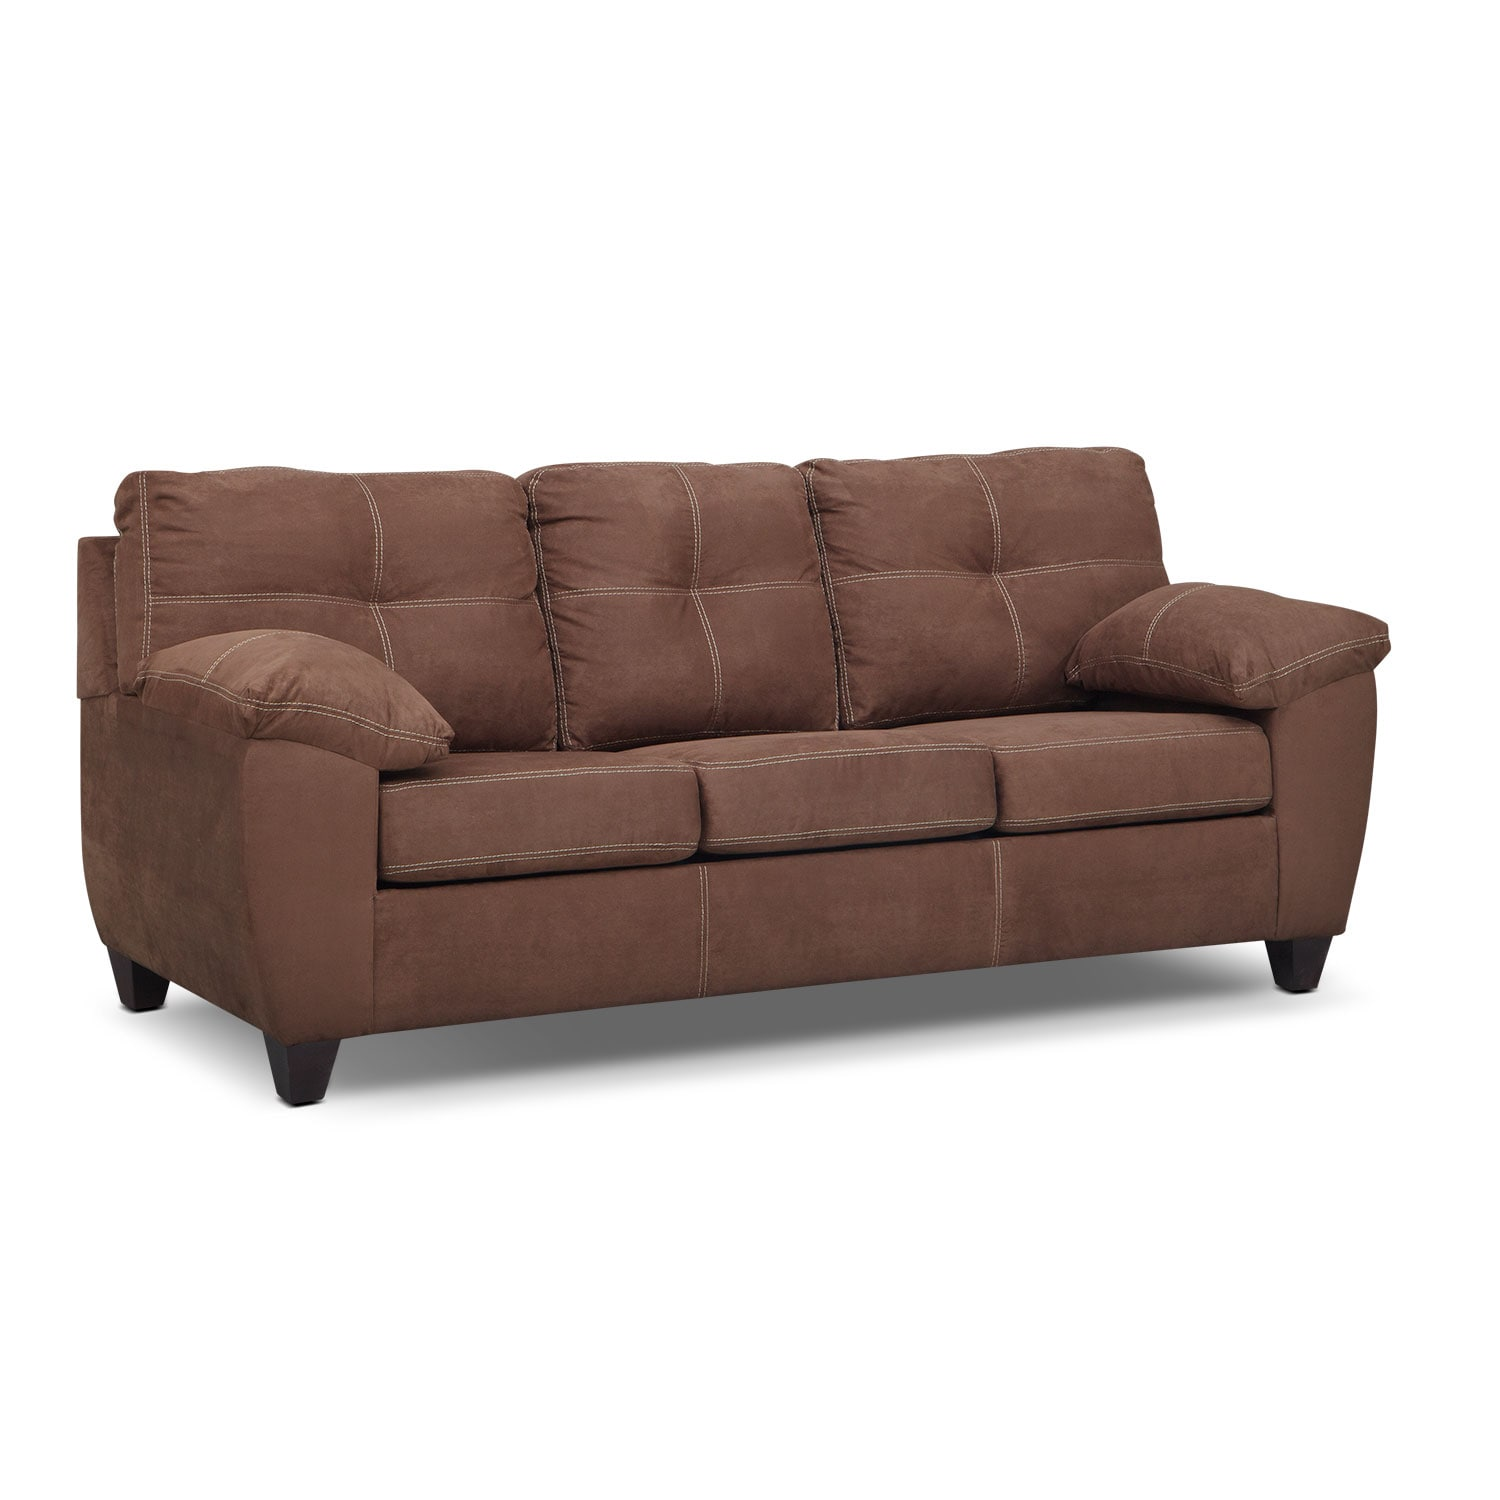 Ricardo queen memory foam sleeper sofa coffee american for I living furniture